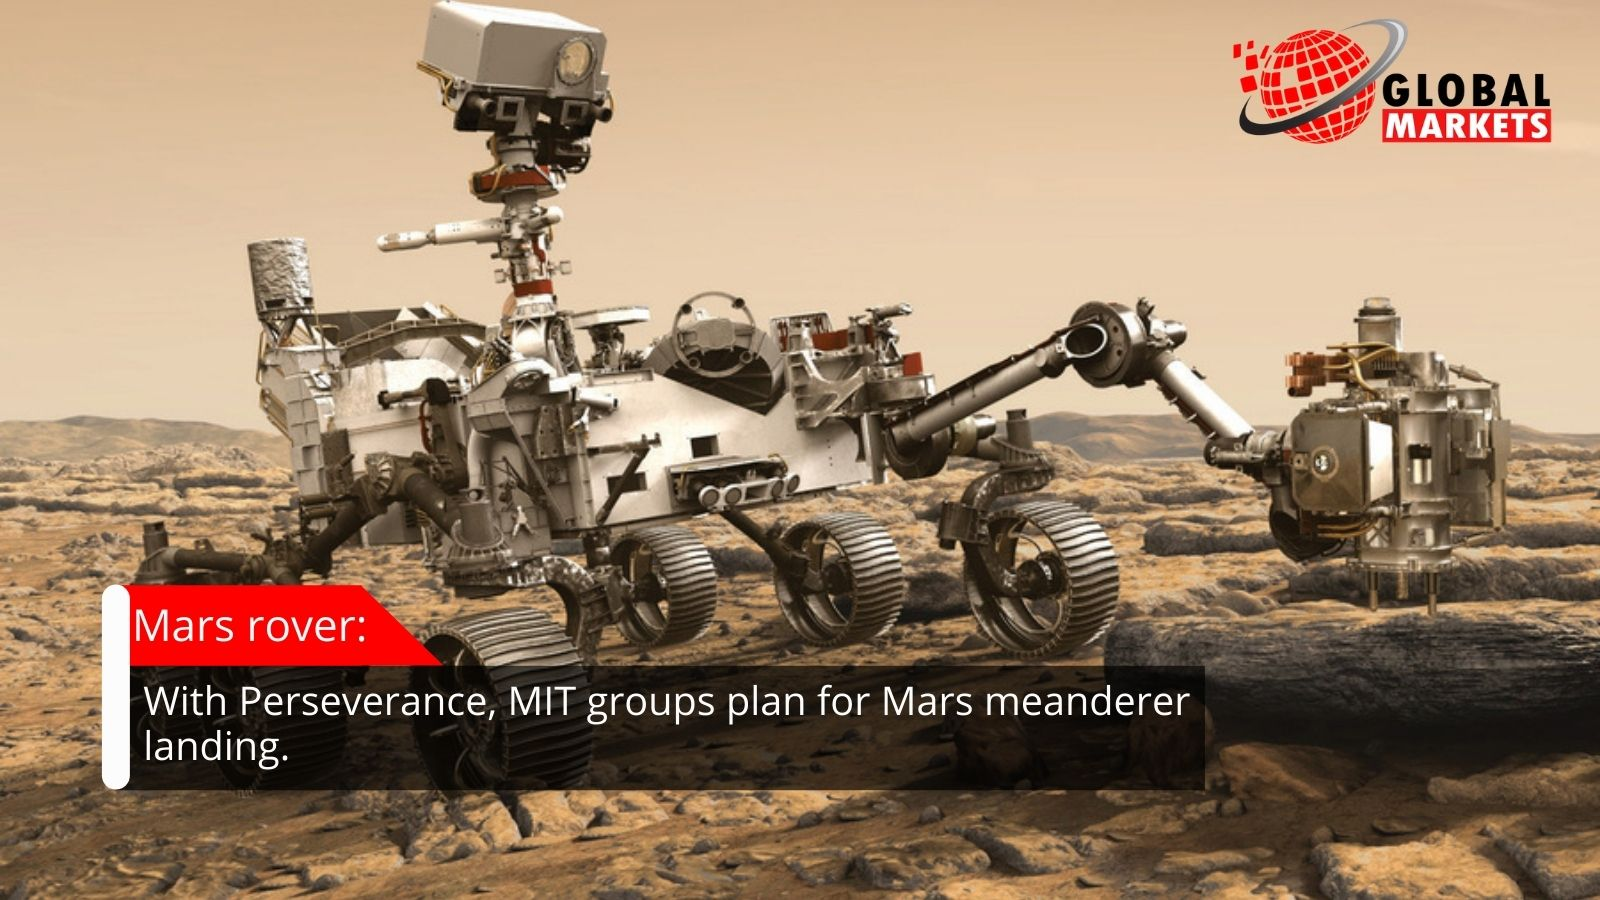 With Perseverance, MIT groups plan for Mars meanderer landing